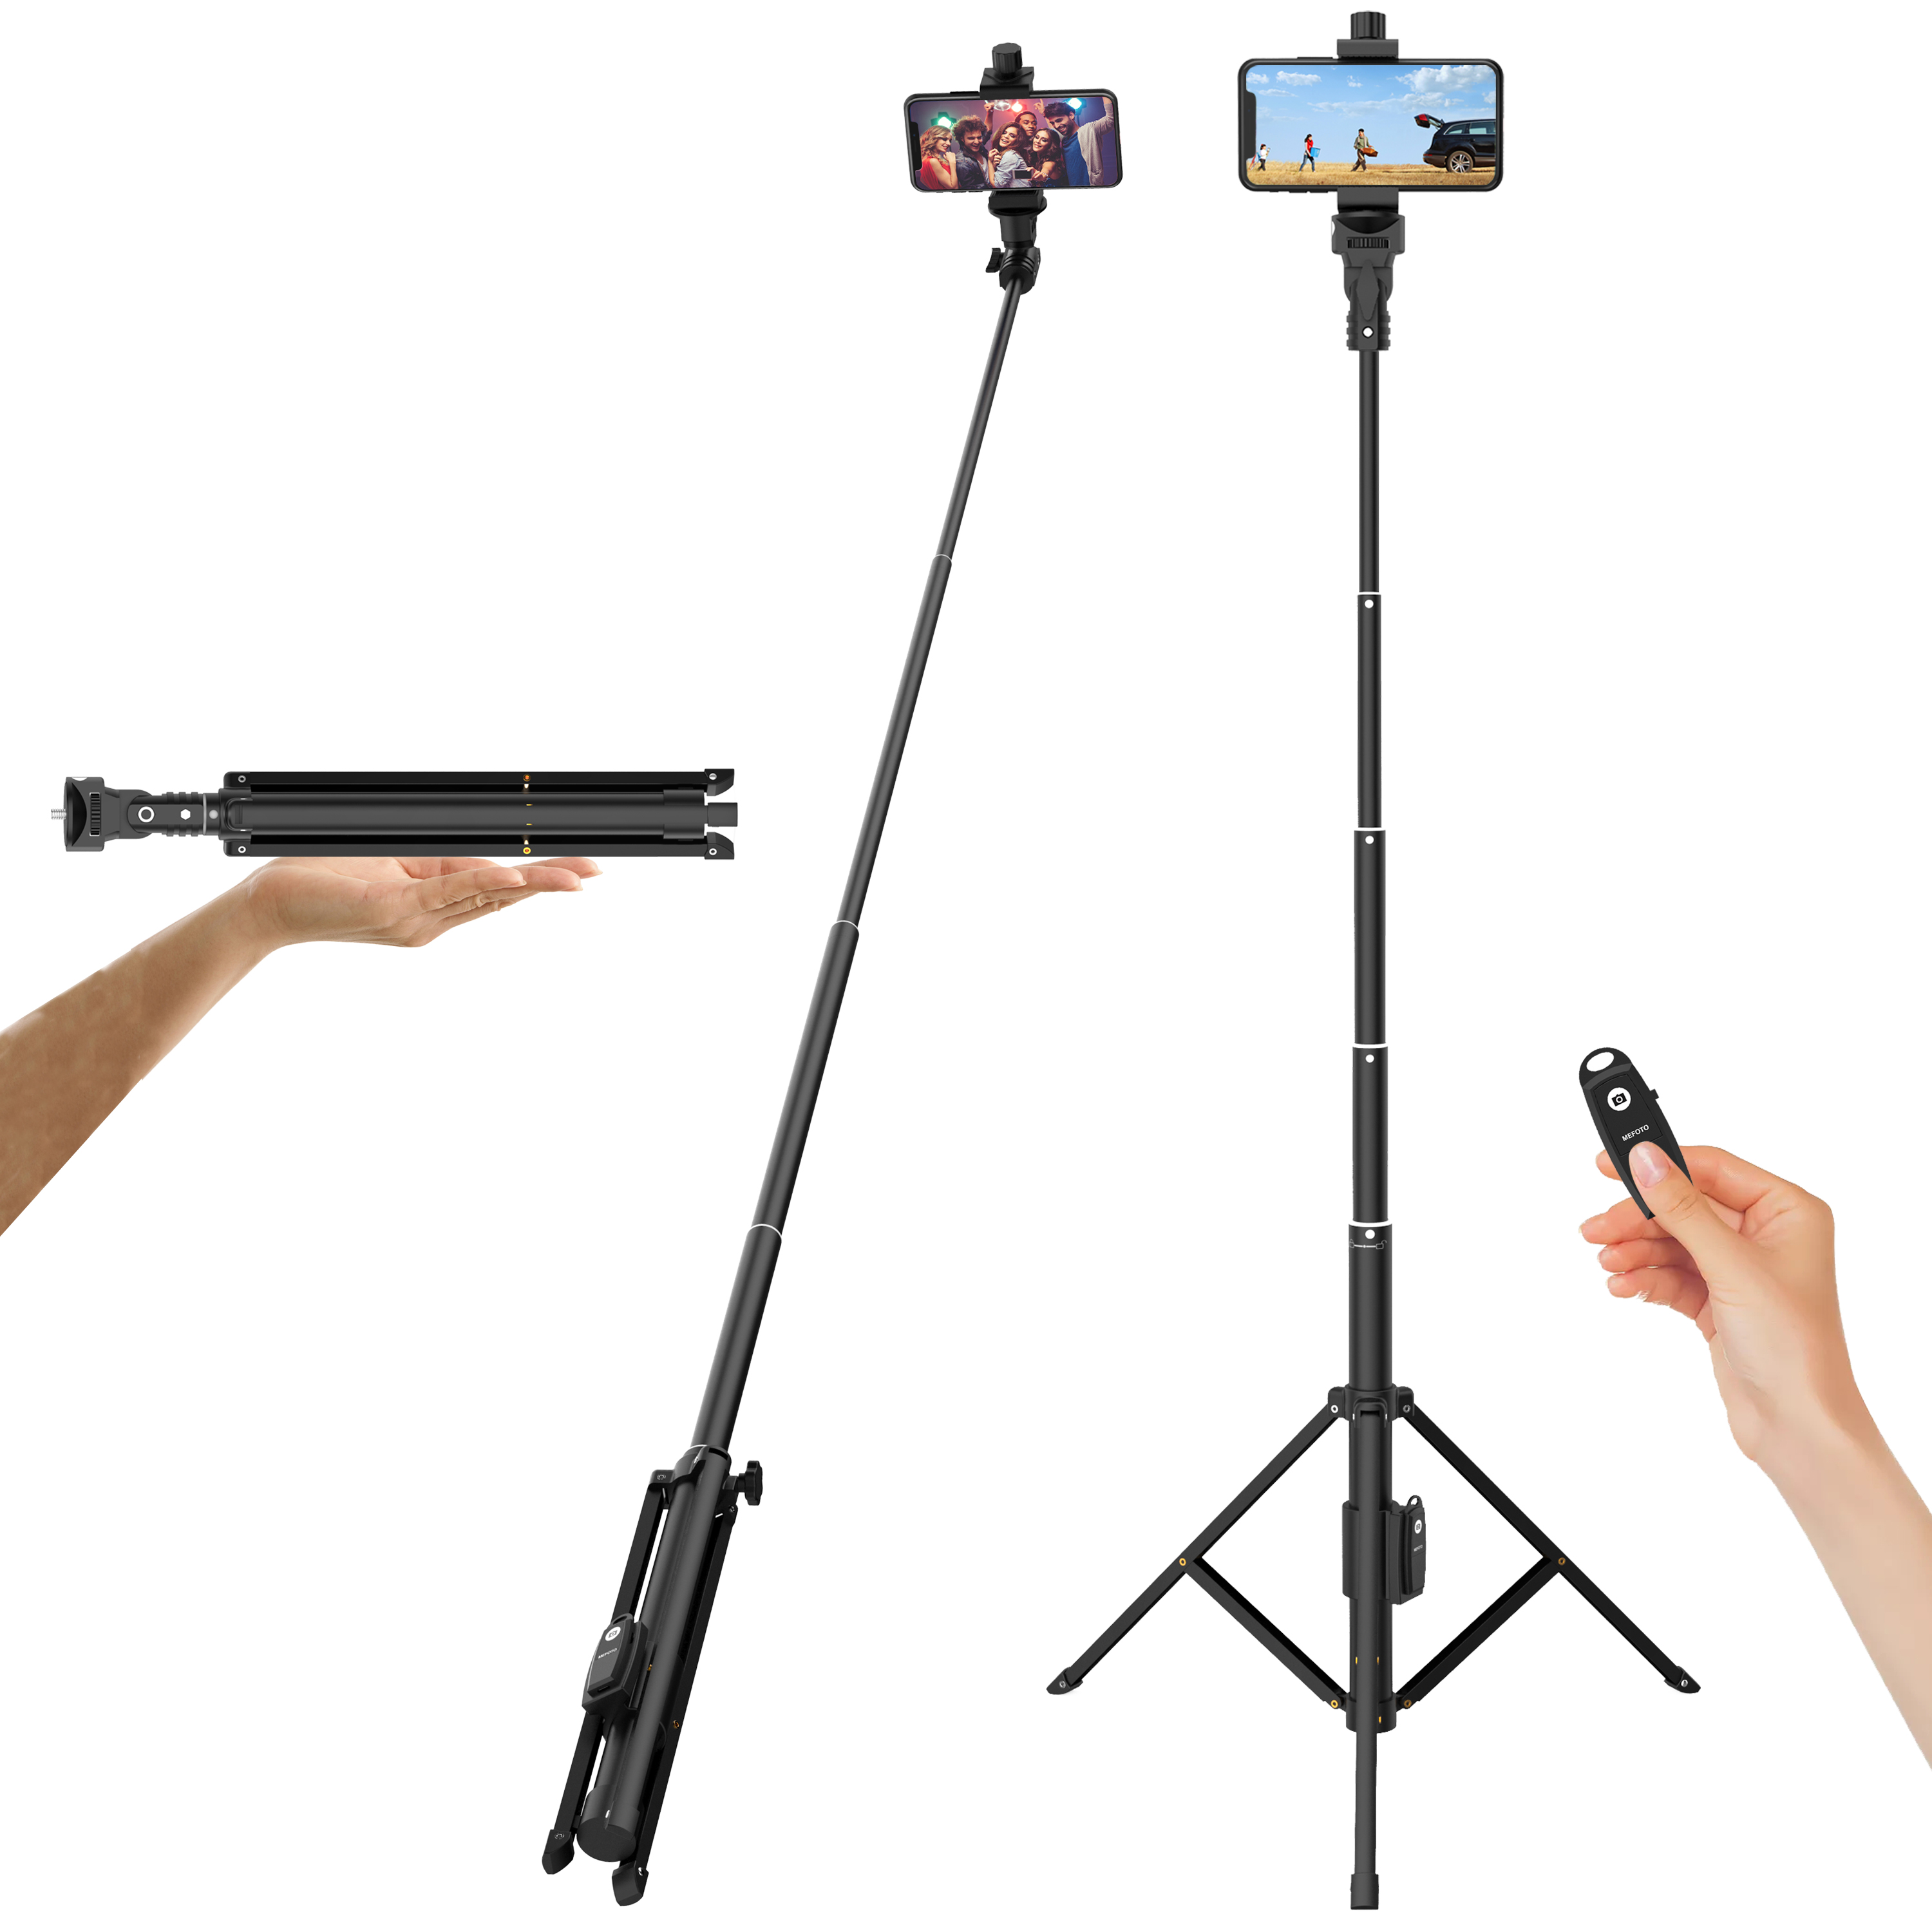 Selfie Stick Tripod for Phone or Camera with Rechargeable